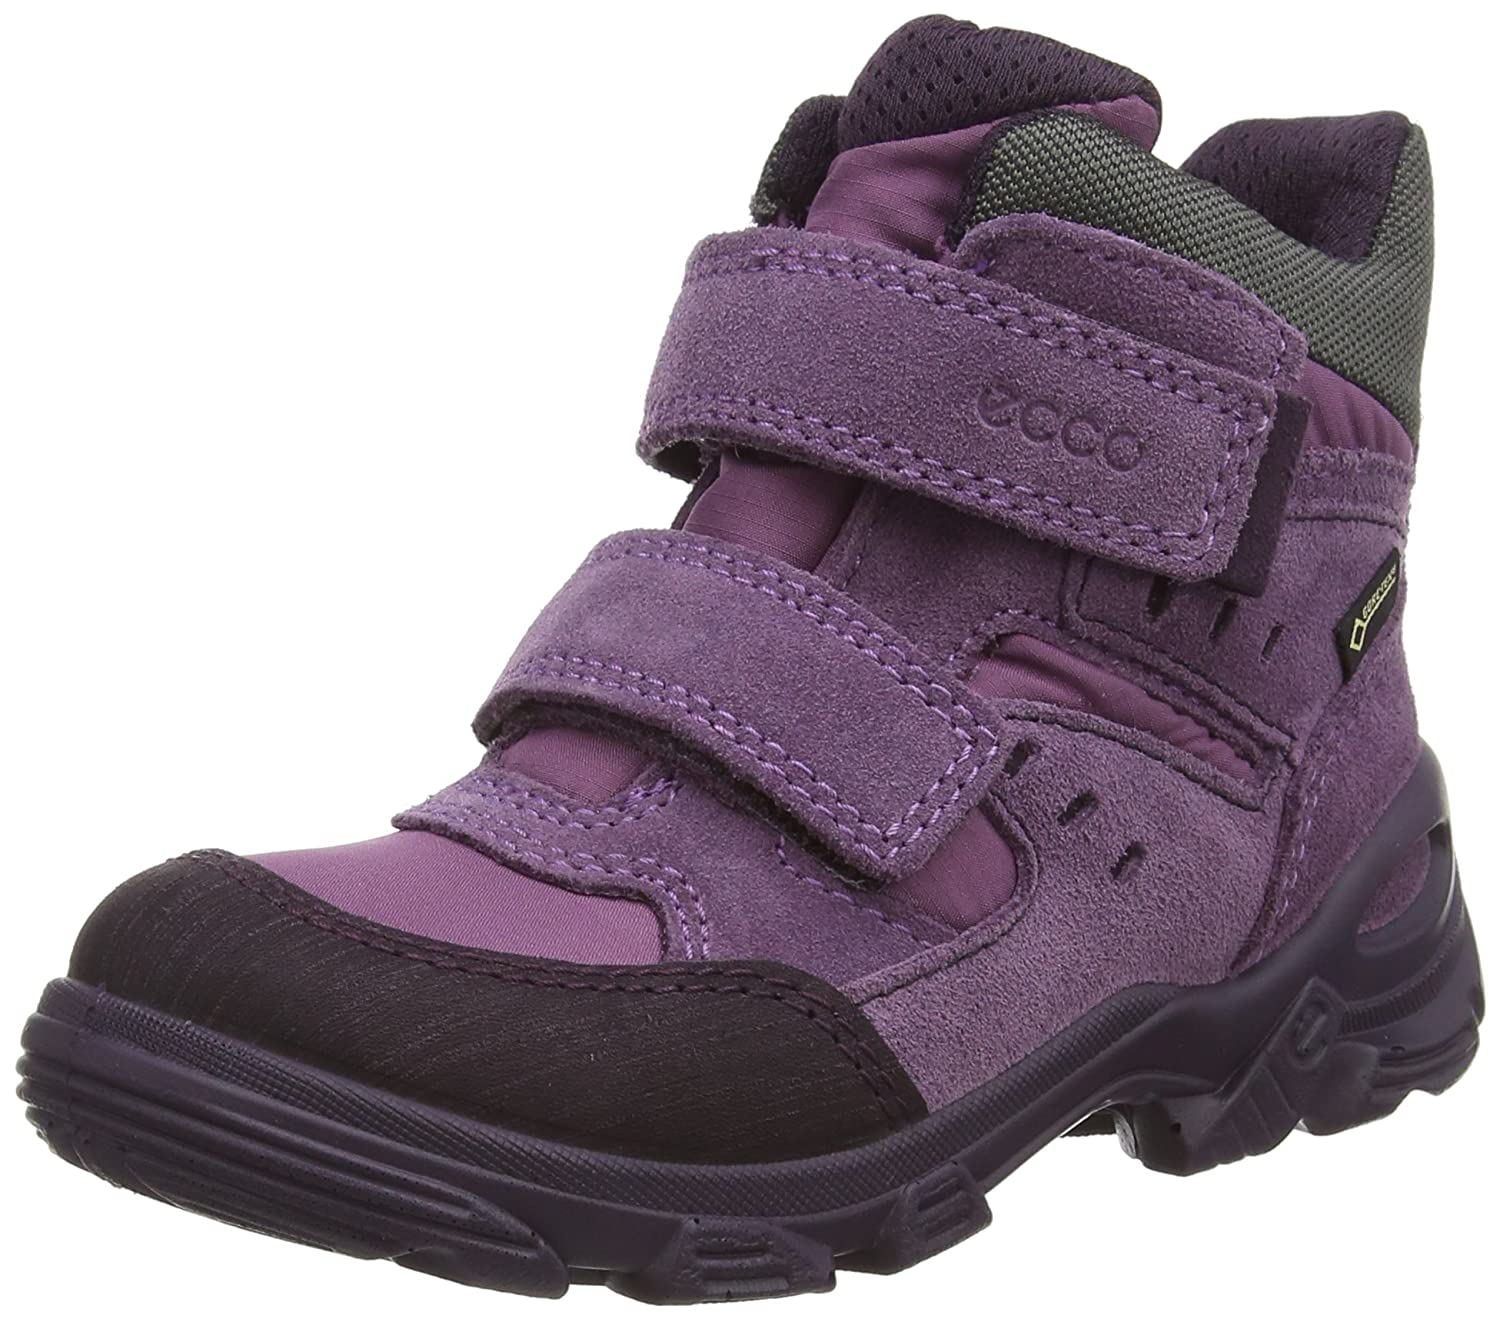 ECCO Snowboarder, Girls' Slouch Ankle Boots, Purple (Night Shade/Grape), 10  UK (28 EU): Amazon.co.uk: Shoes & Bags